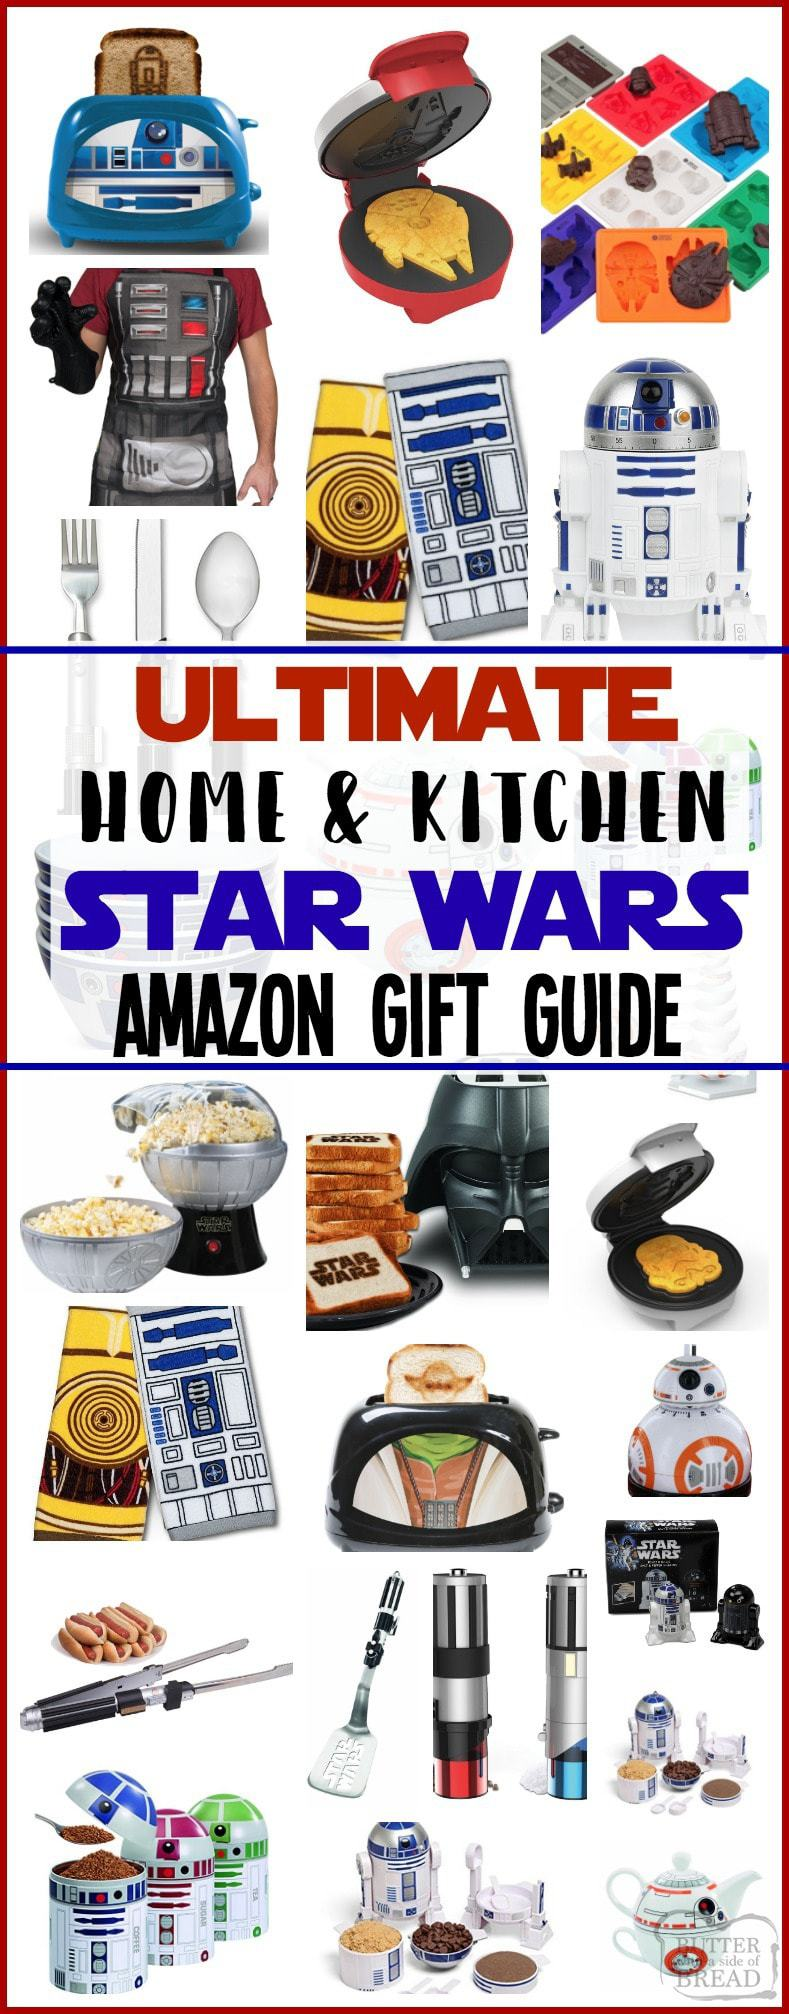 Best Star Wars Gifts on Amazon for the home & kitchen! Find the perfect home and kitchen Star Wars gift on Amazon for the ultimate fan. #StarWars #Gifts #Amazon #StarWarsGifts